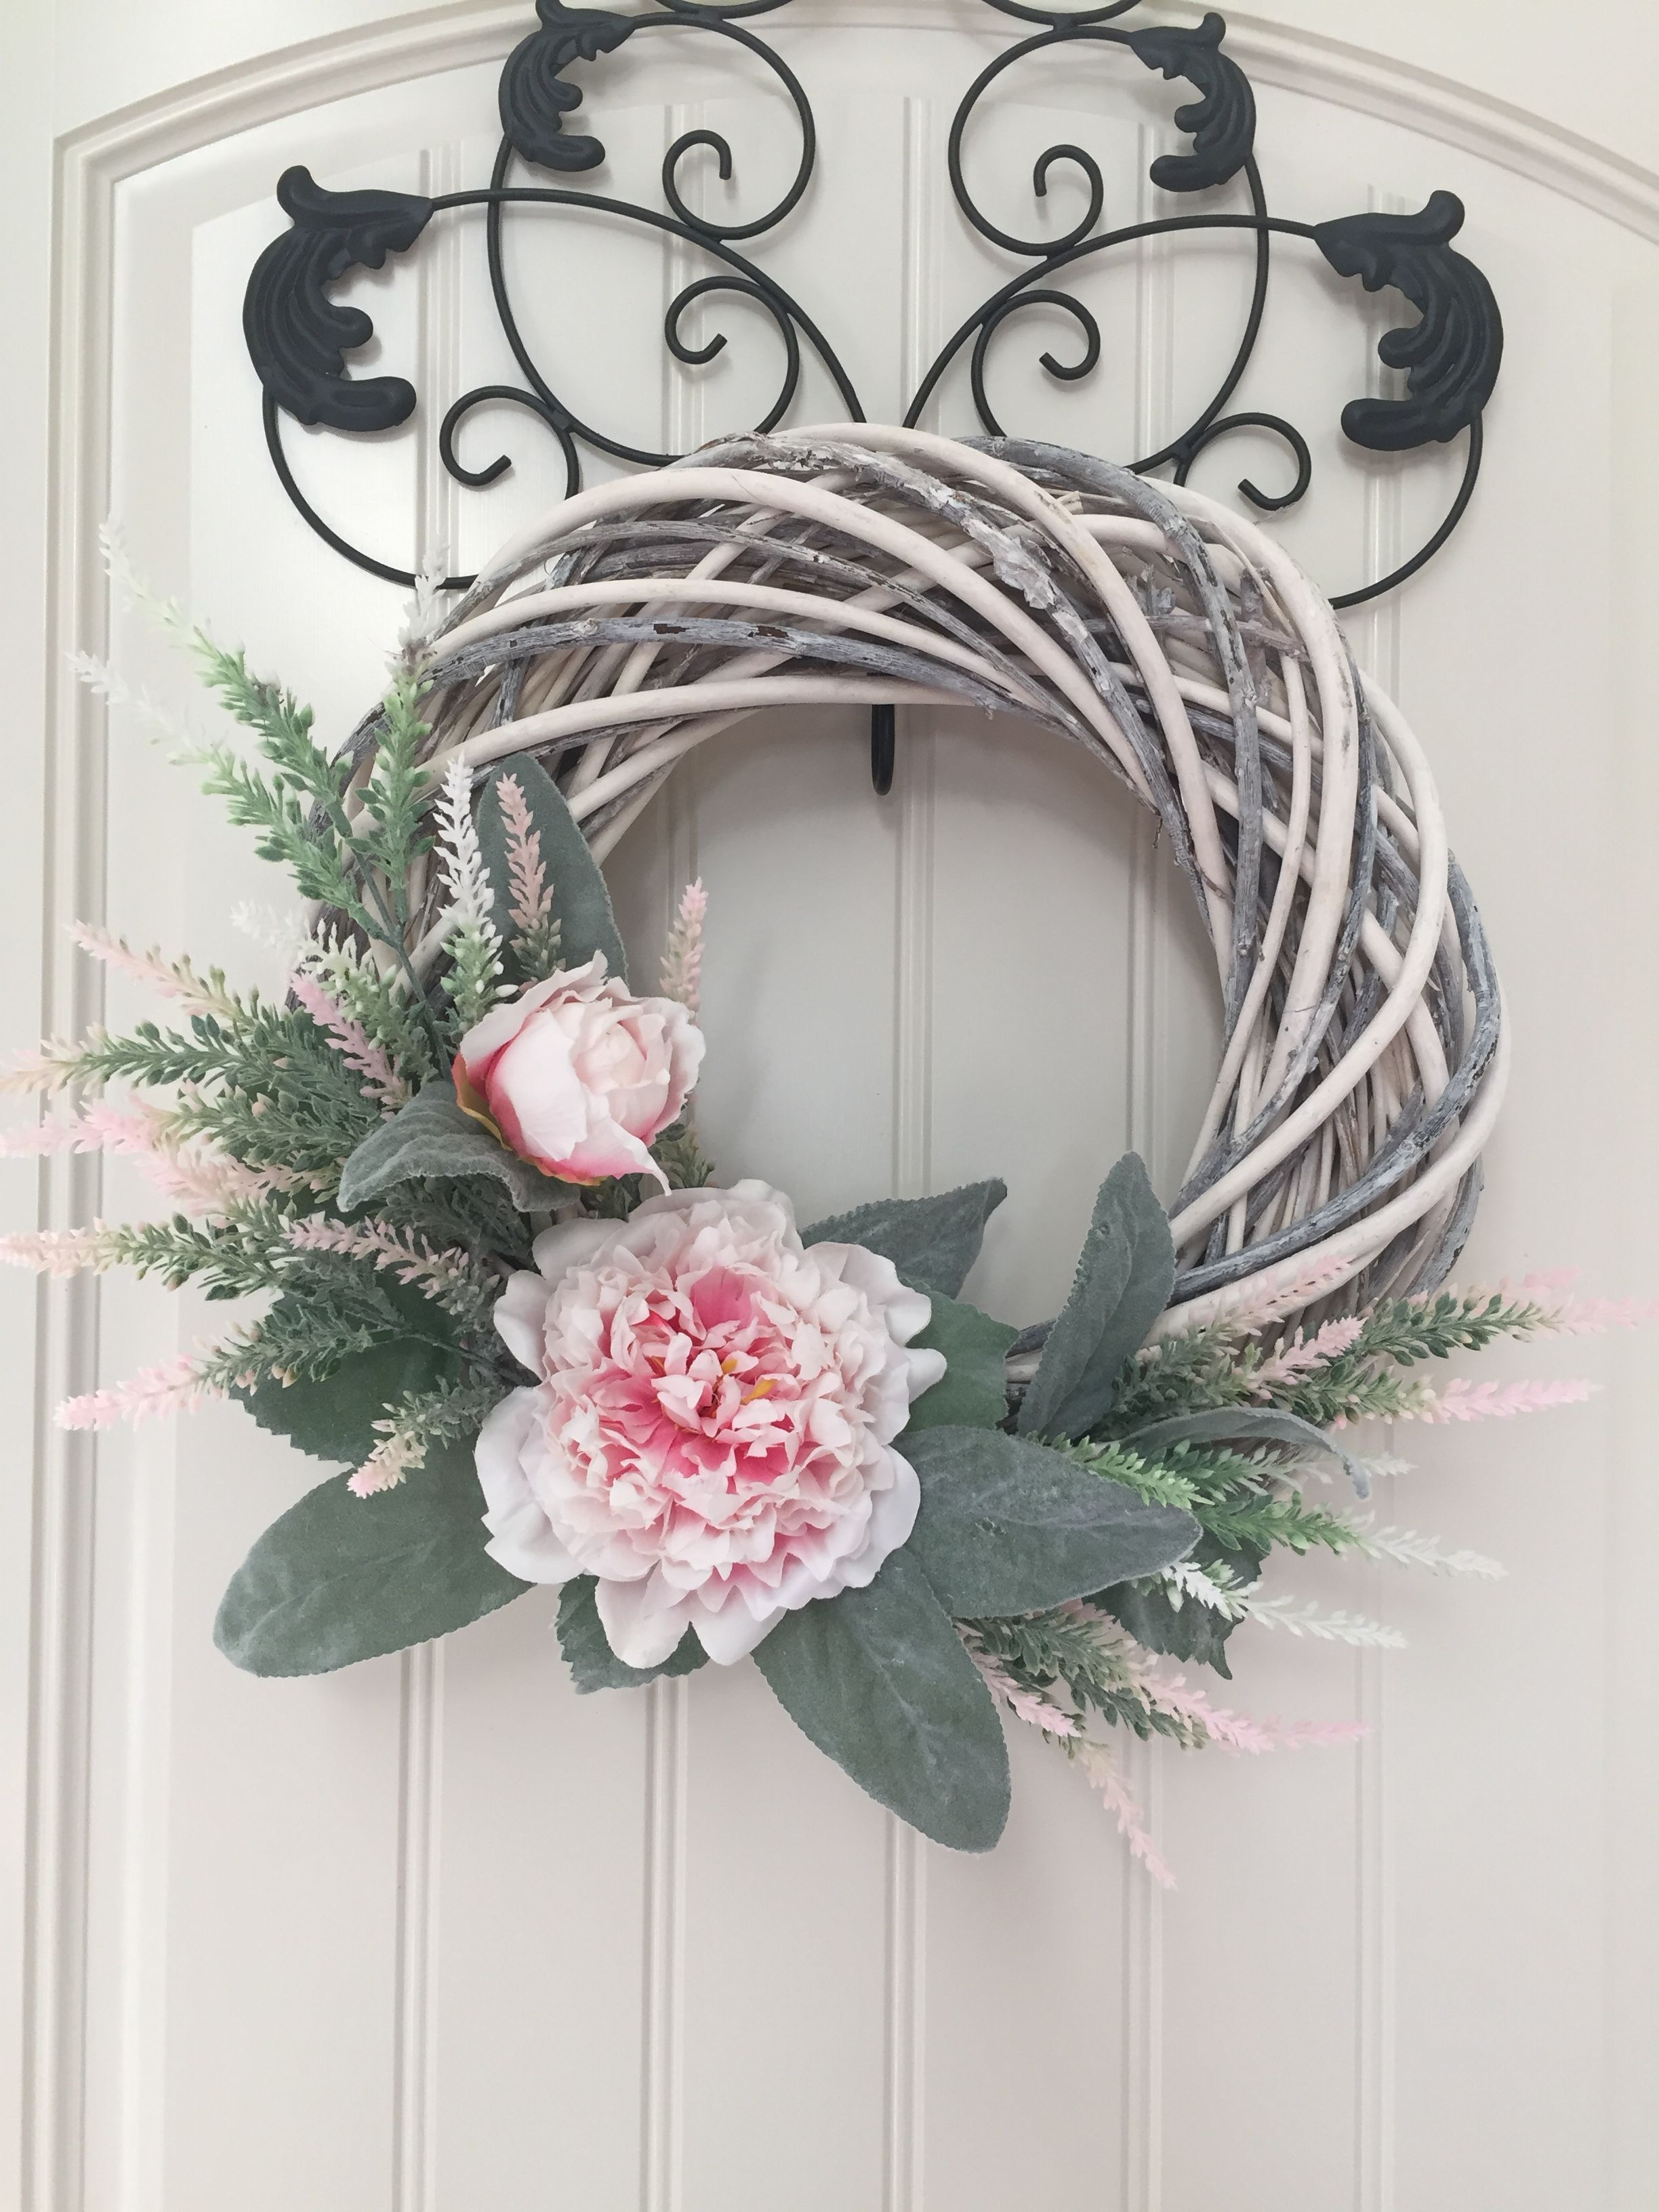 White Grapevine Wreath With Pink Peonies And Lambs Ear White Grapevine Wreath Grapevine Wreath Grape Vines